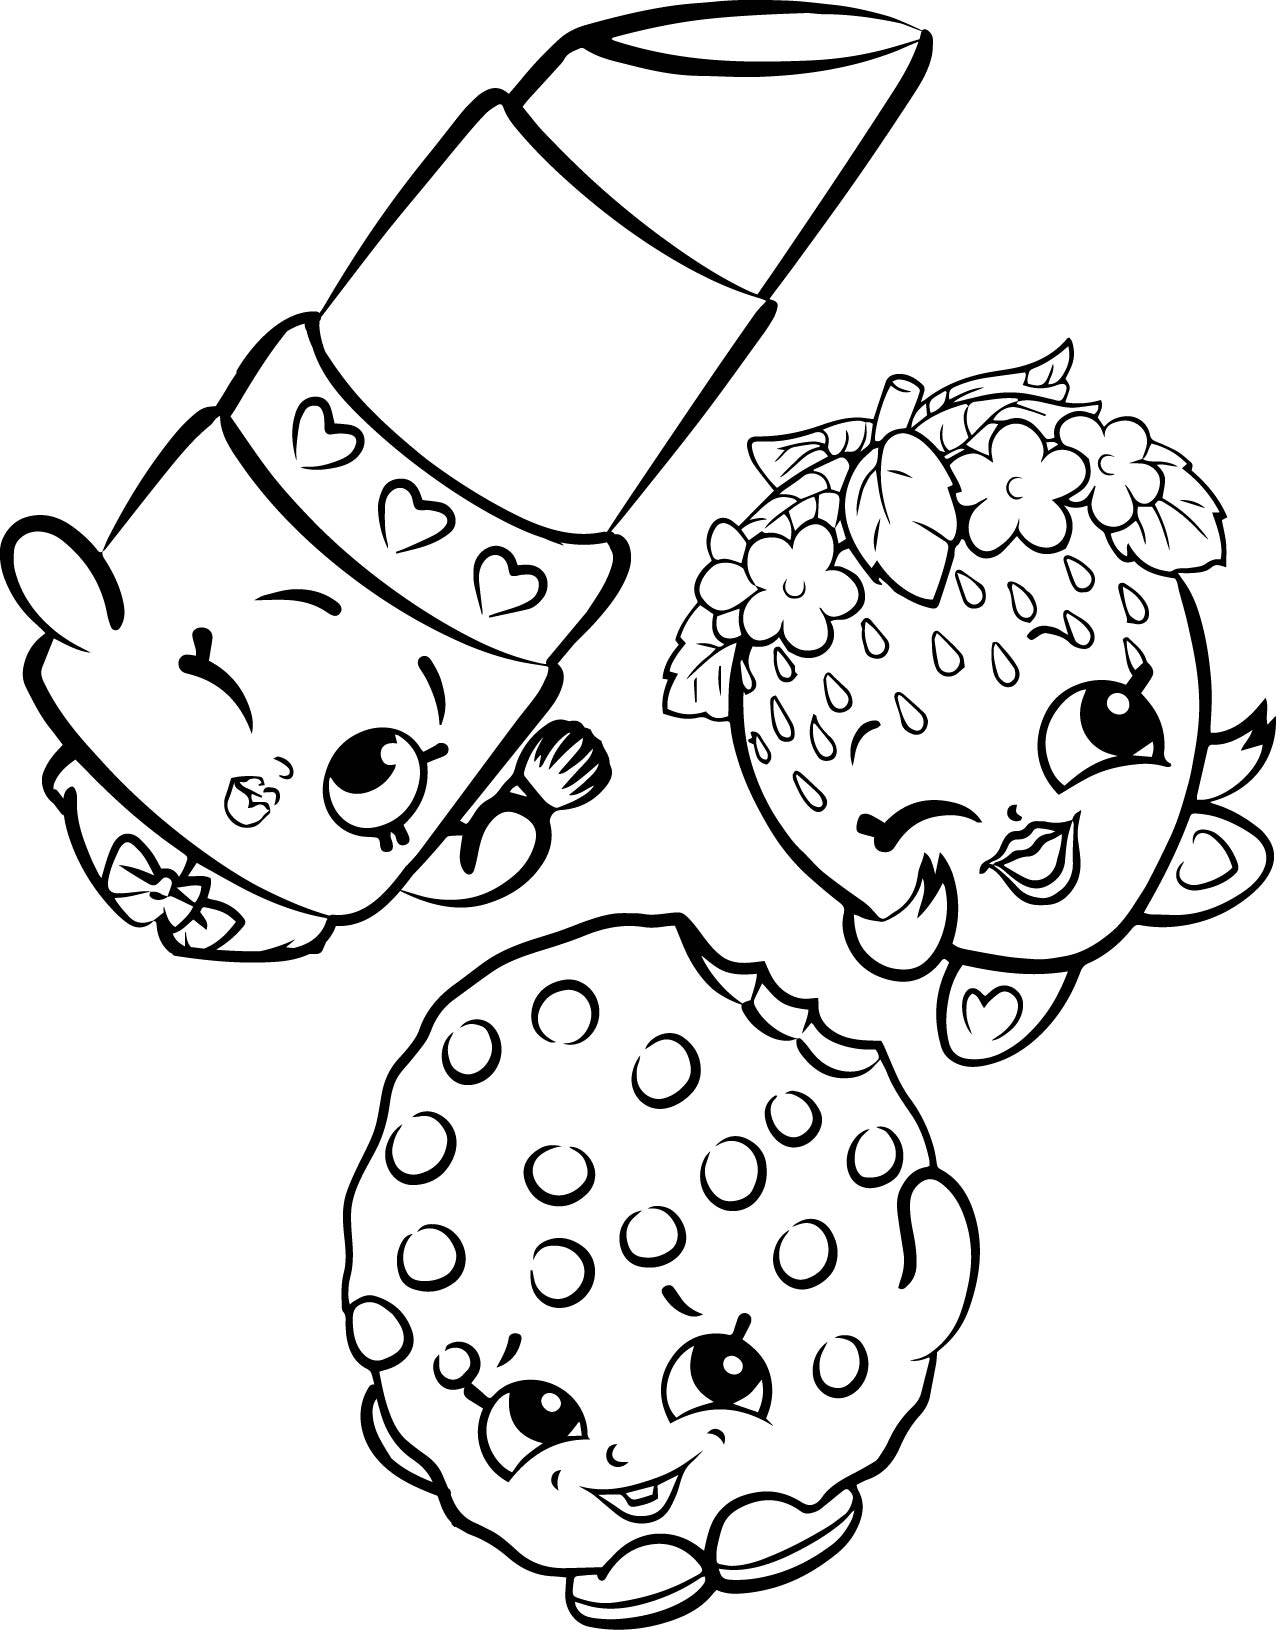 Shopkins coloring pages kook cookie - Your Mouth Will Water With These New Shopkins Coloring Pages But Dont Eat